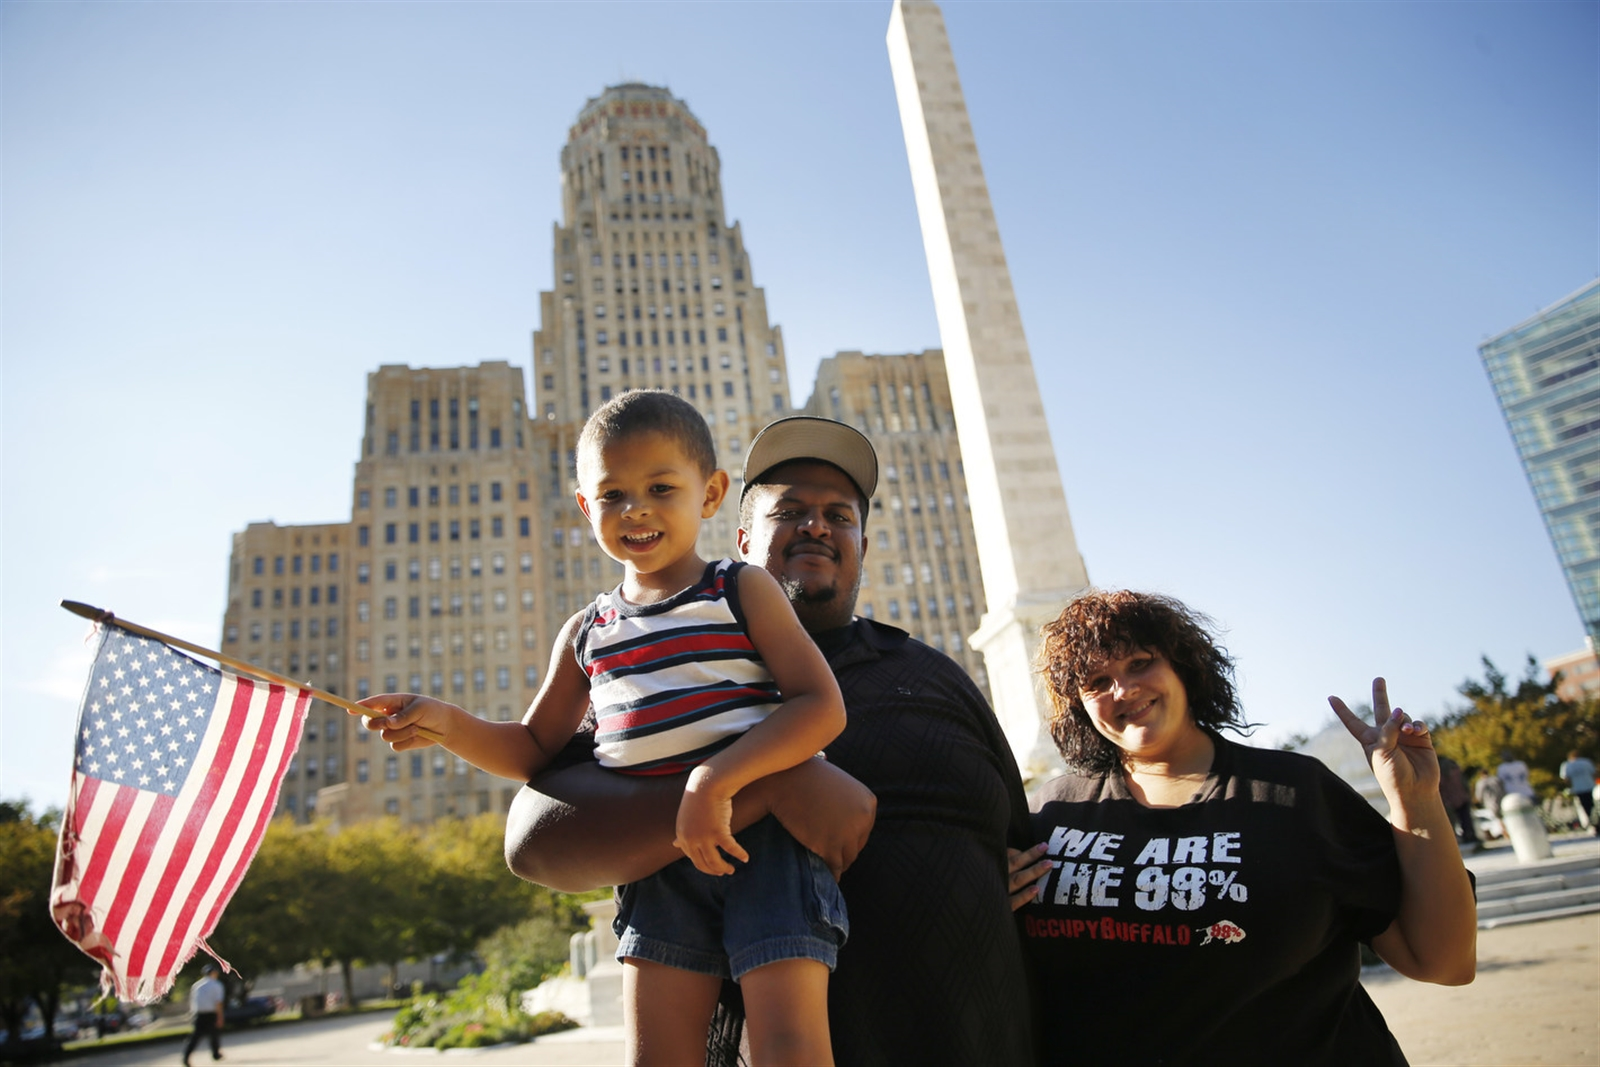 John Washington and Mindy Jo Russo met during the Occupy Buffalo movement five years ago.  Nine months later, they had a baby boy they named Justice Will Prevail Washington, who is now 4 1/2, Wednesday, Oct. 5, 2016.